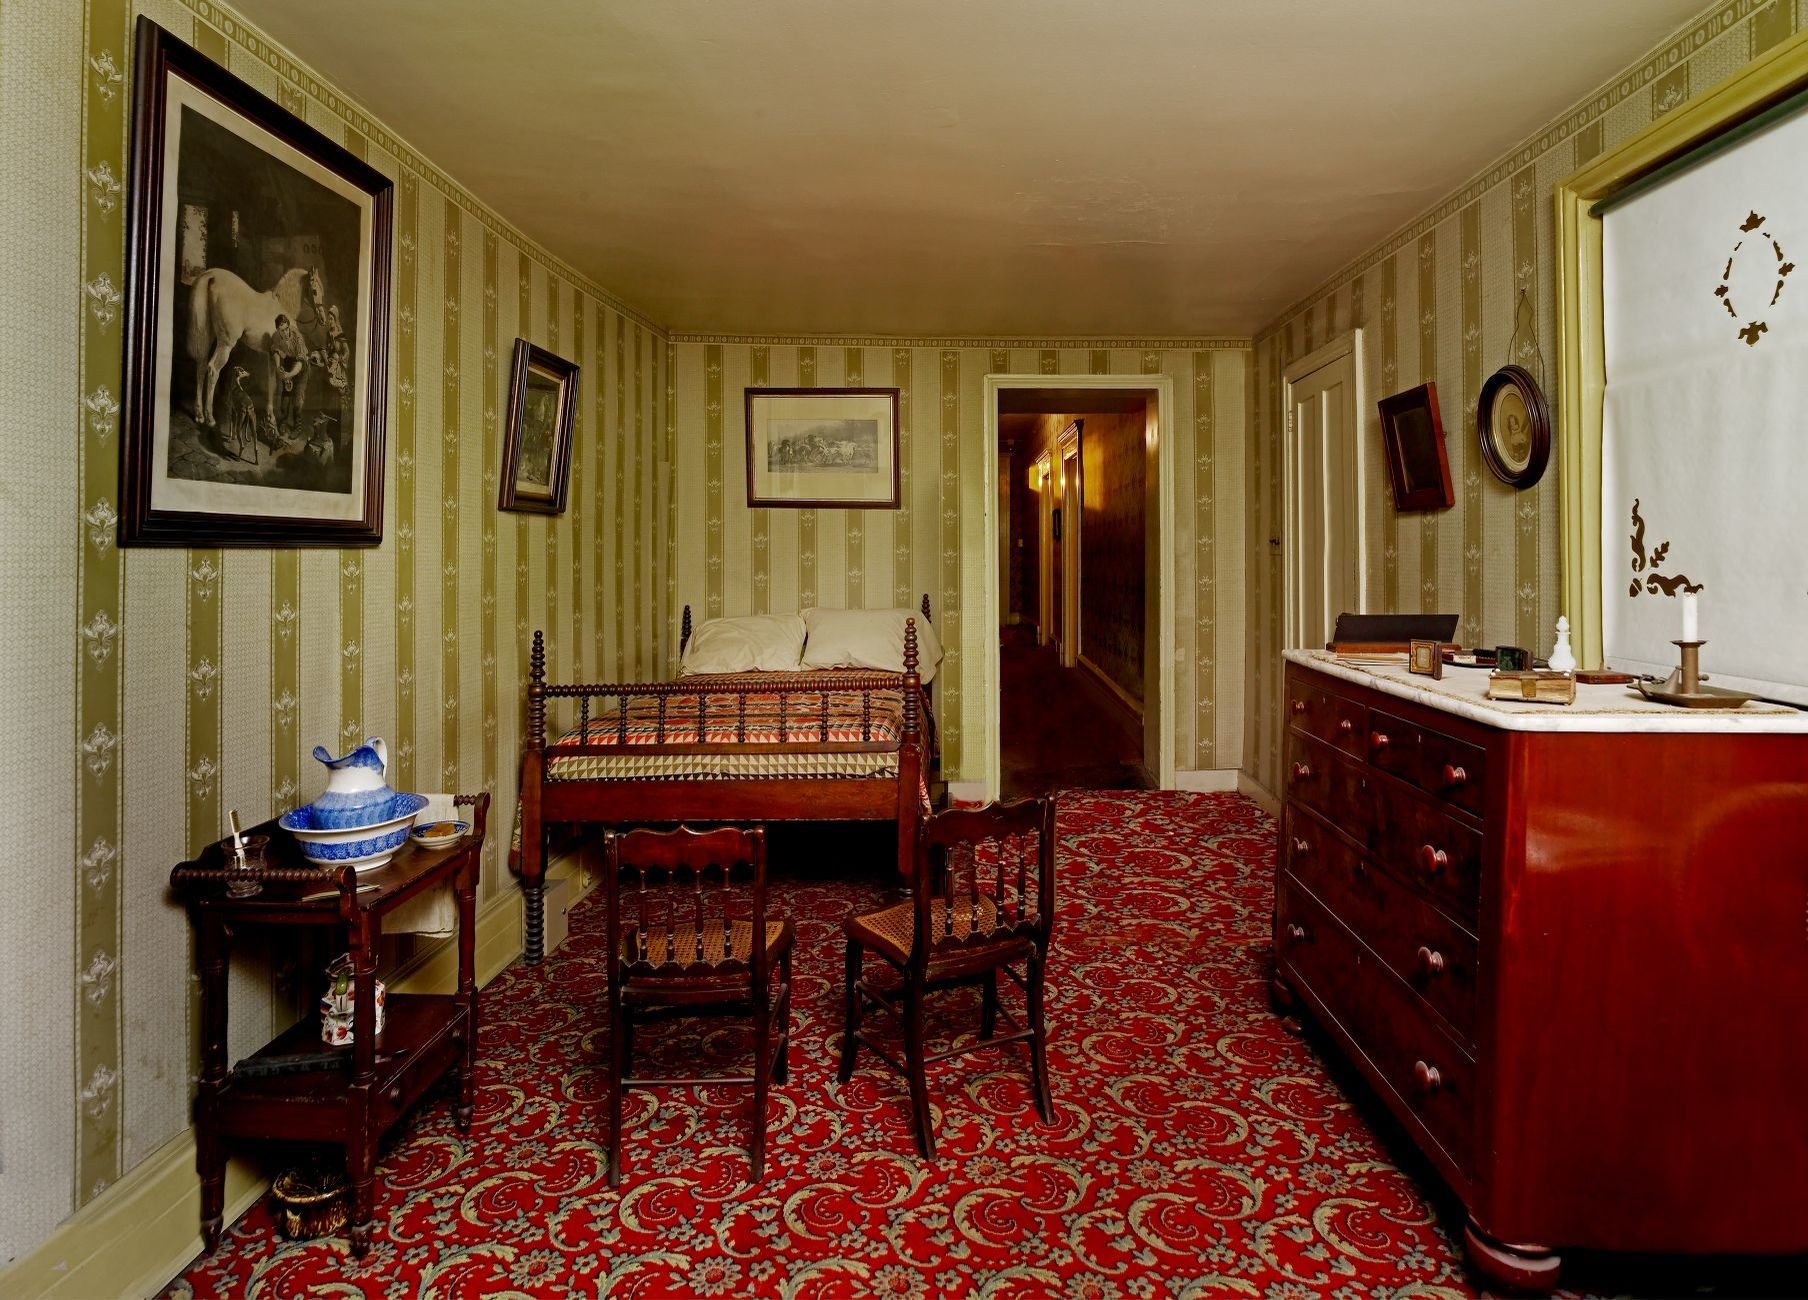 Room In The Petersen House Where Abraham Lincoln Died